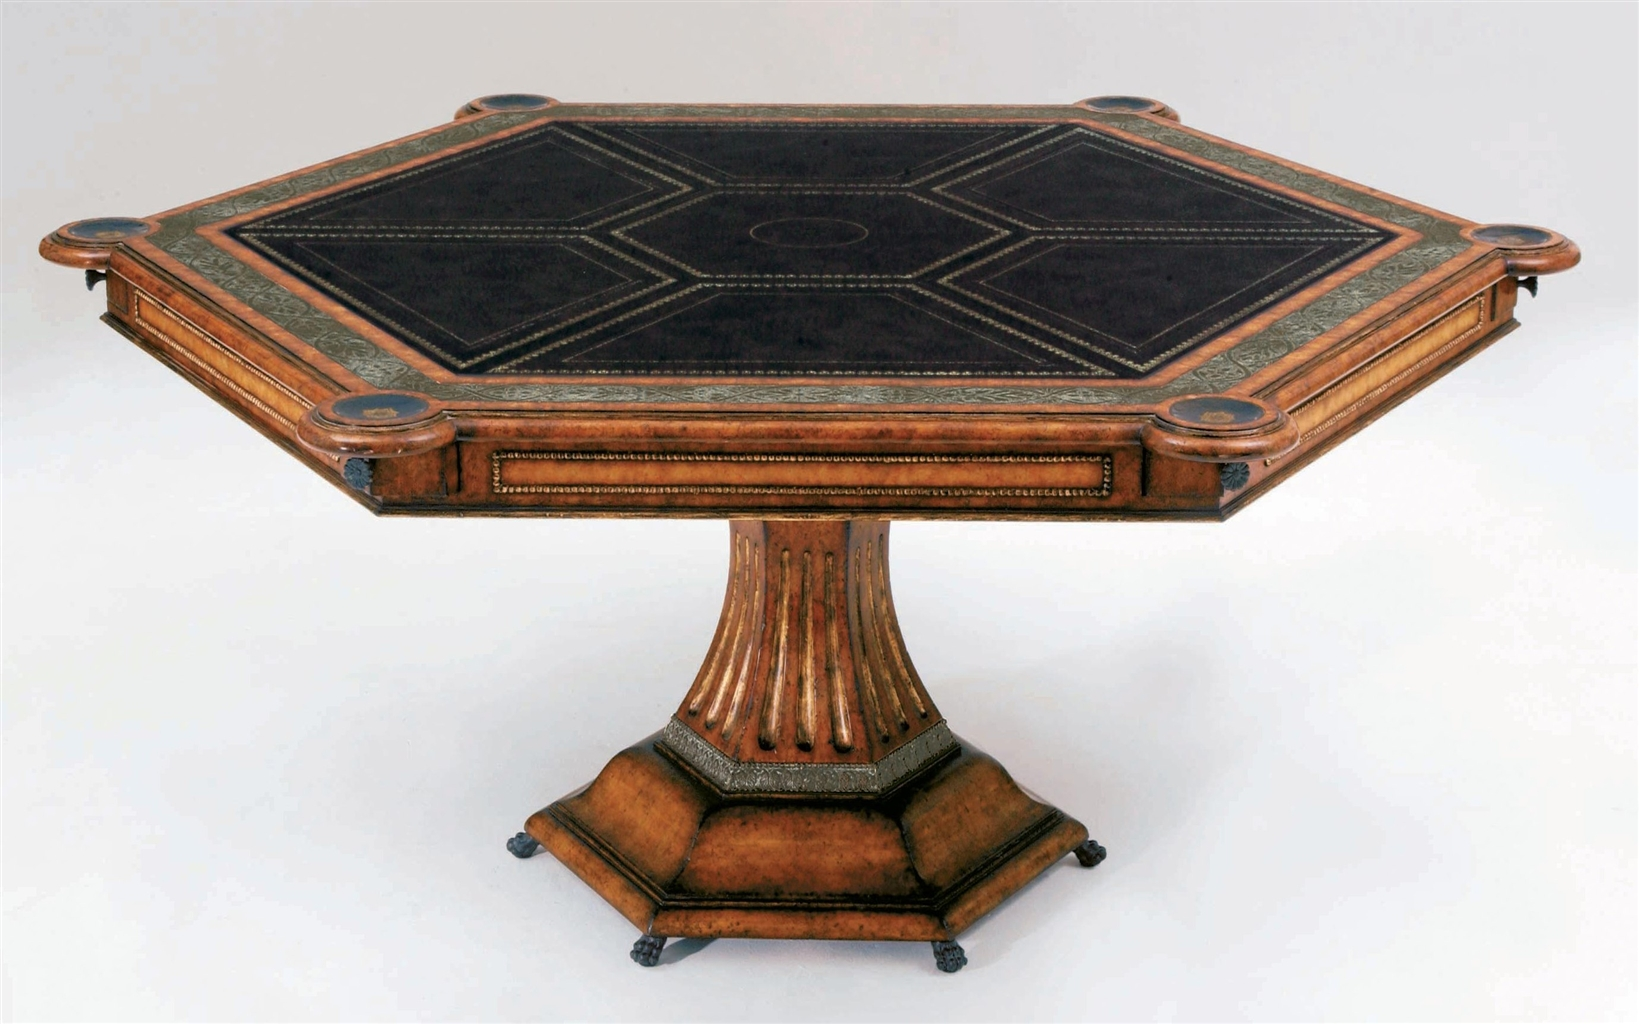 Six Player Card Table Luxury Furnishings